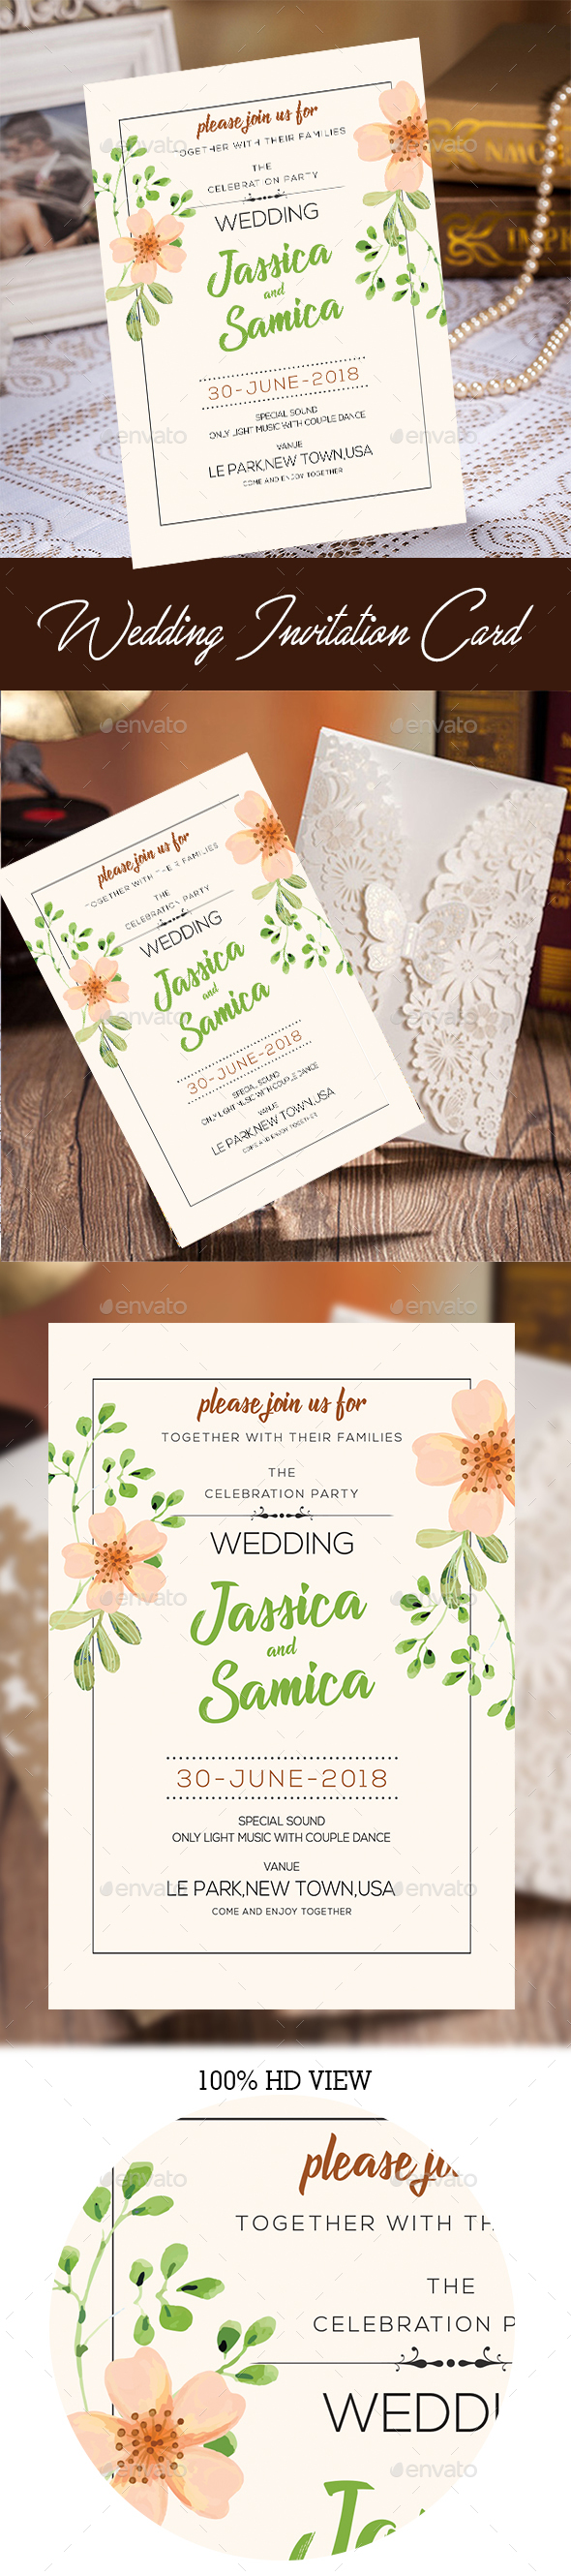 Wedding Invitation - Invitations Cards & Invites